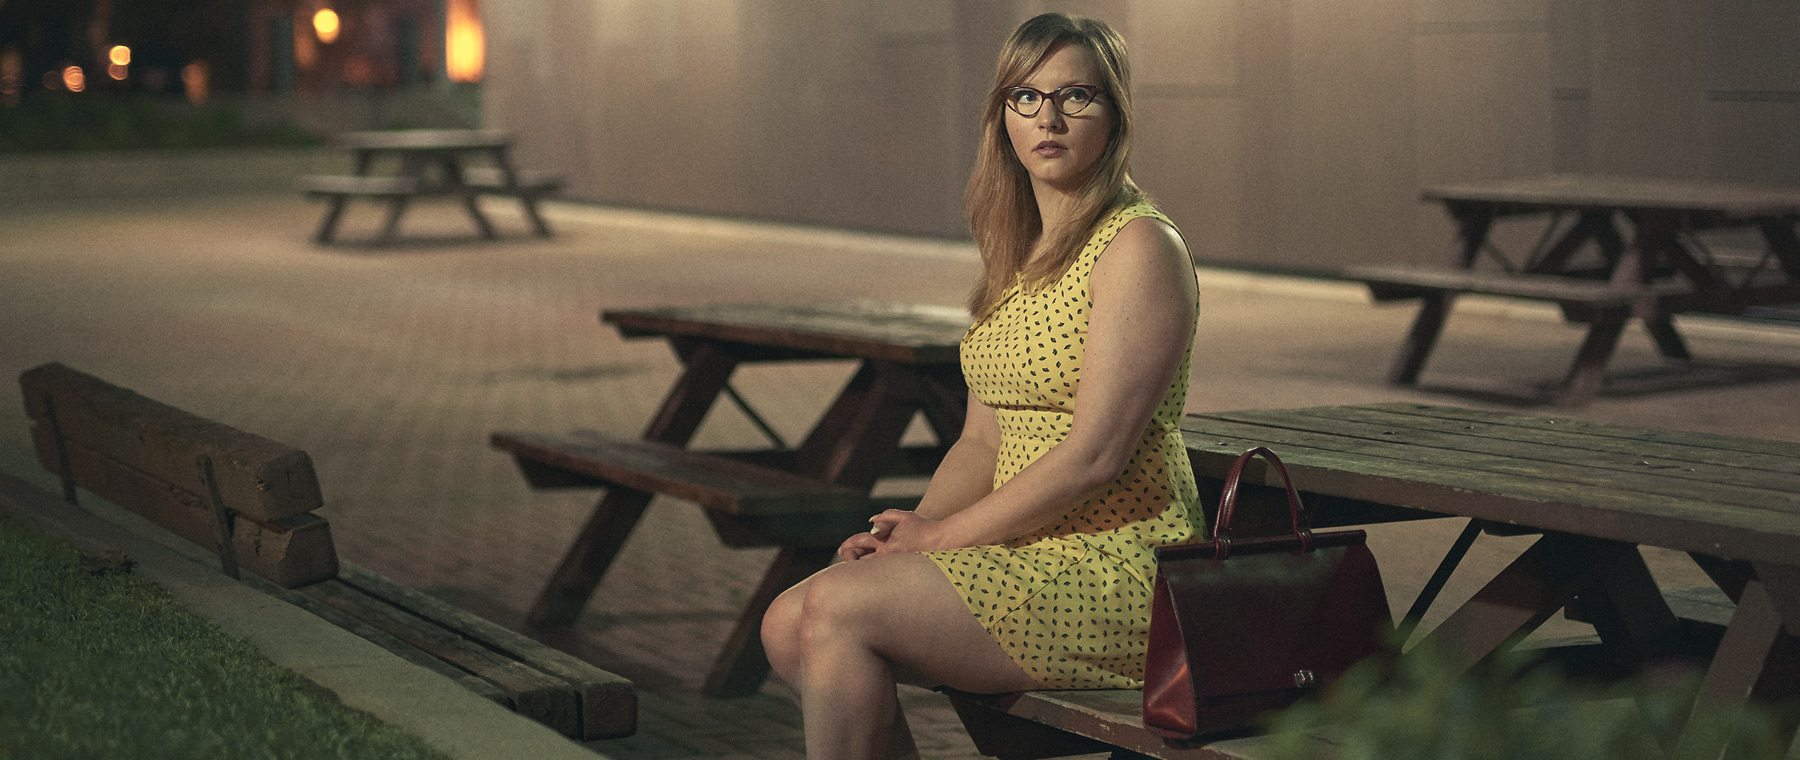 Women are targets of violent crime and Julie Lalonde wants to talk about it